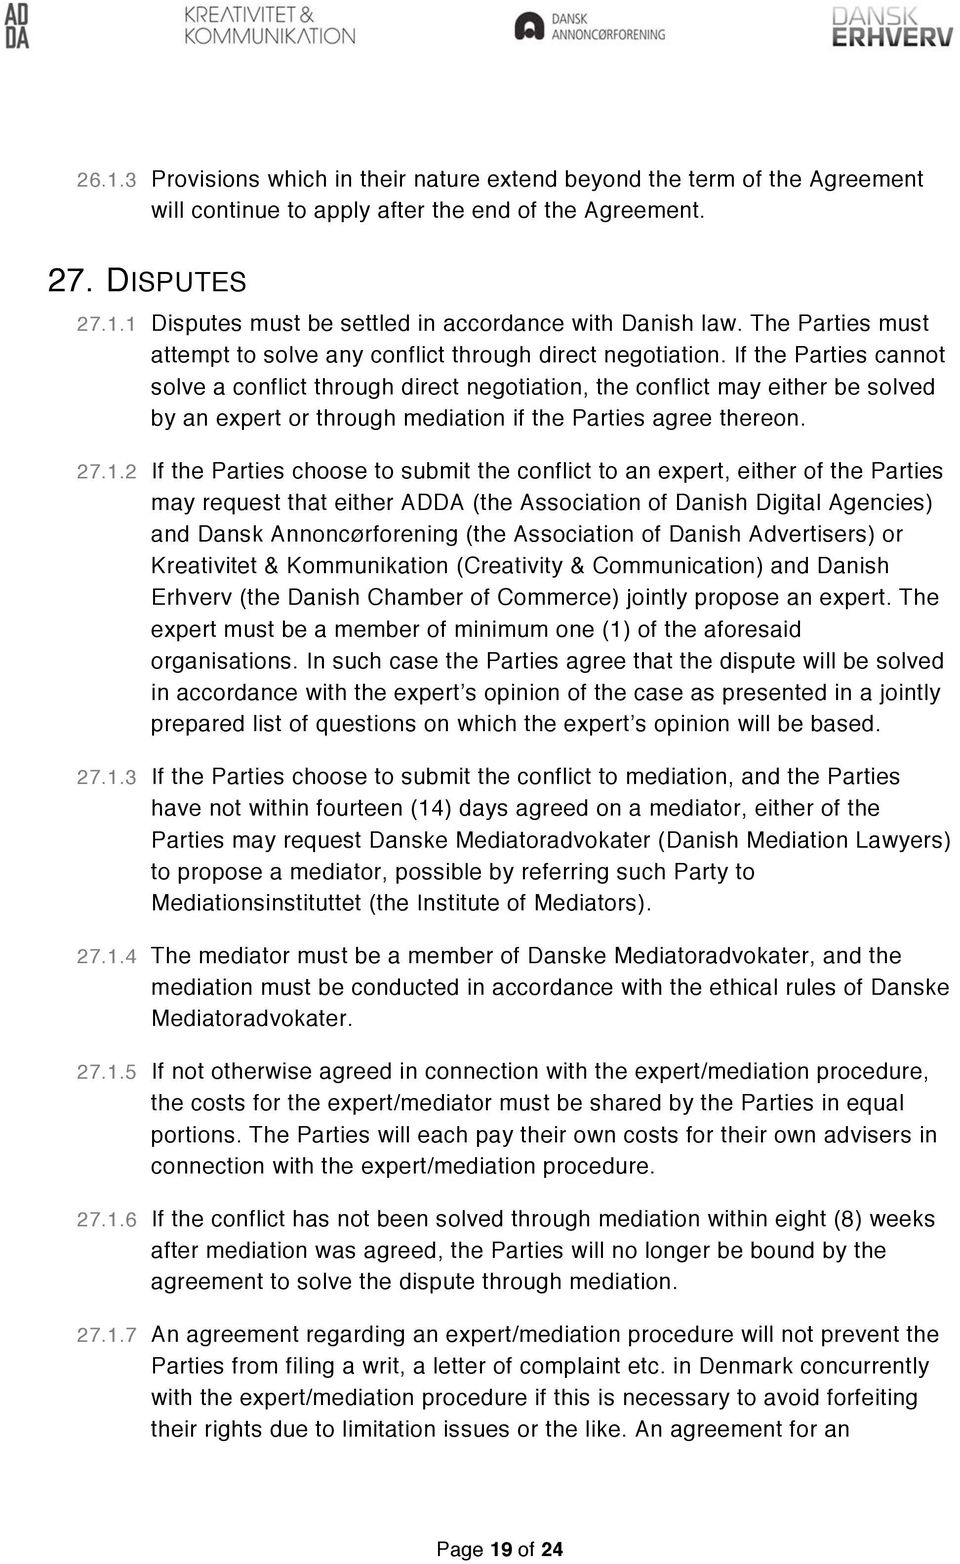 If the Parties cannot solve a conflict through direct negotiation, the conflict may either be solved by an expert or through mediation if the Parties agree thereon. 27.1.